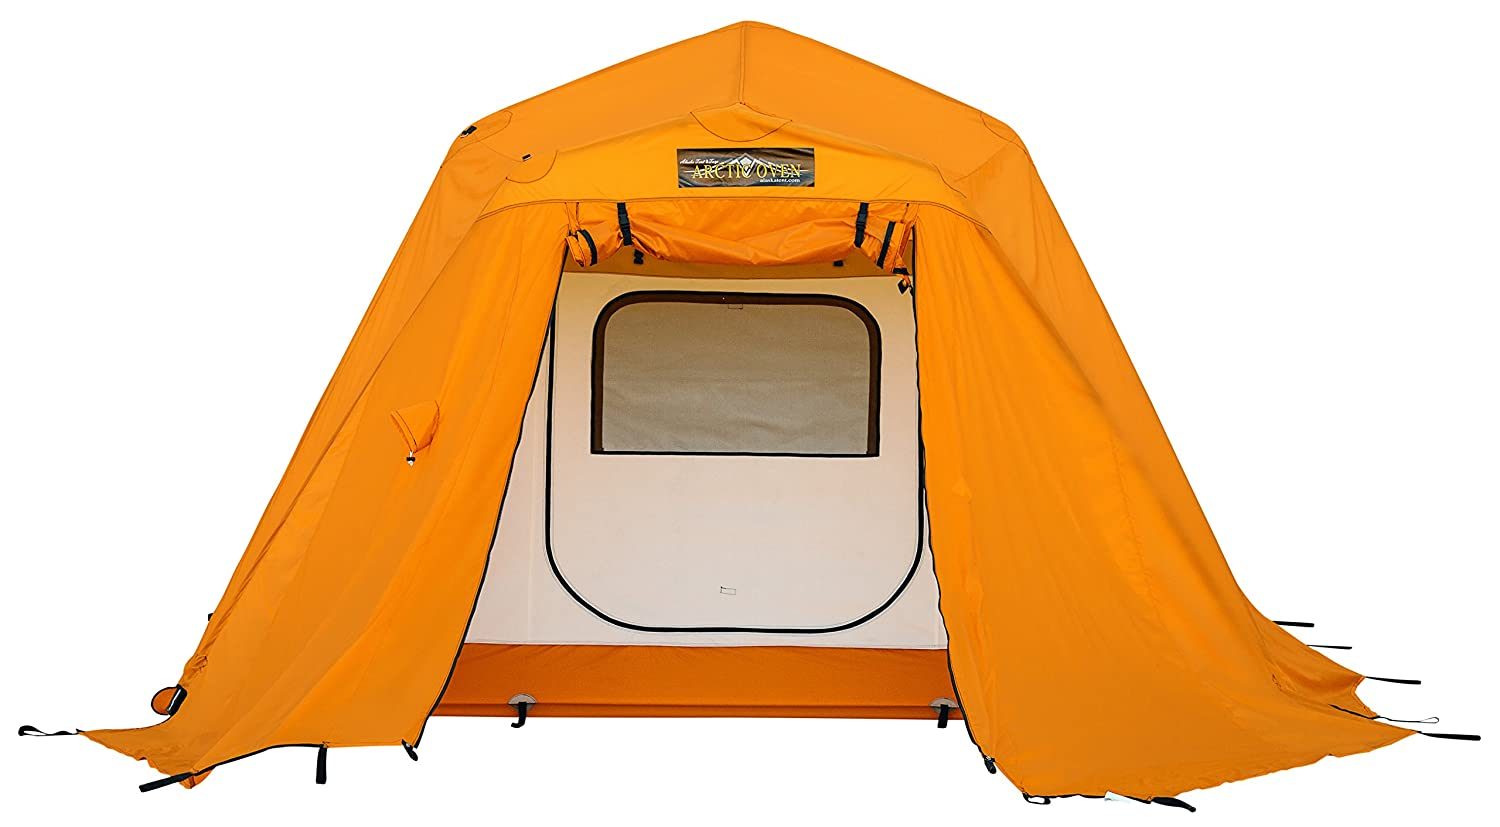 sc 1 st  Amazon.com & Amazon.com : Arctic Oven 12 with Vestibule : Sports u0026 Outdoors